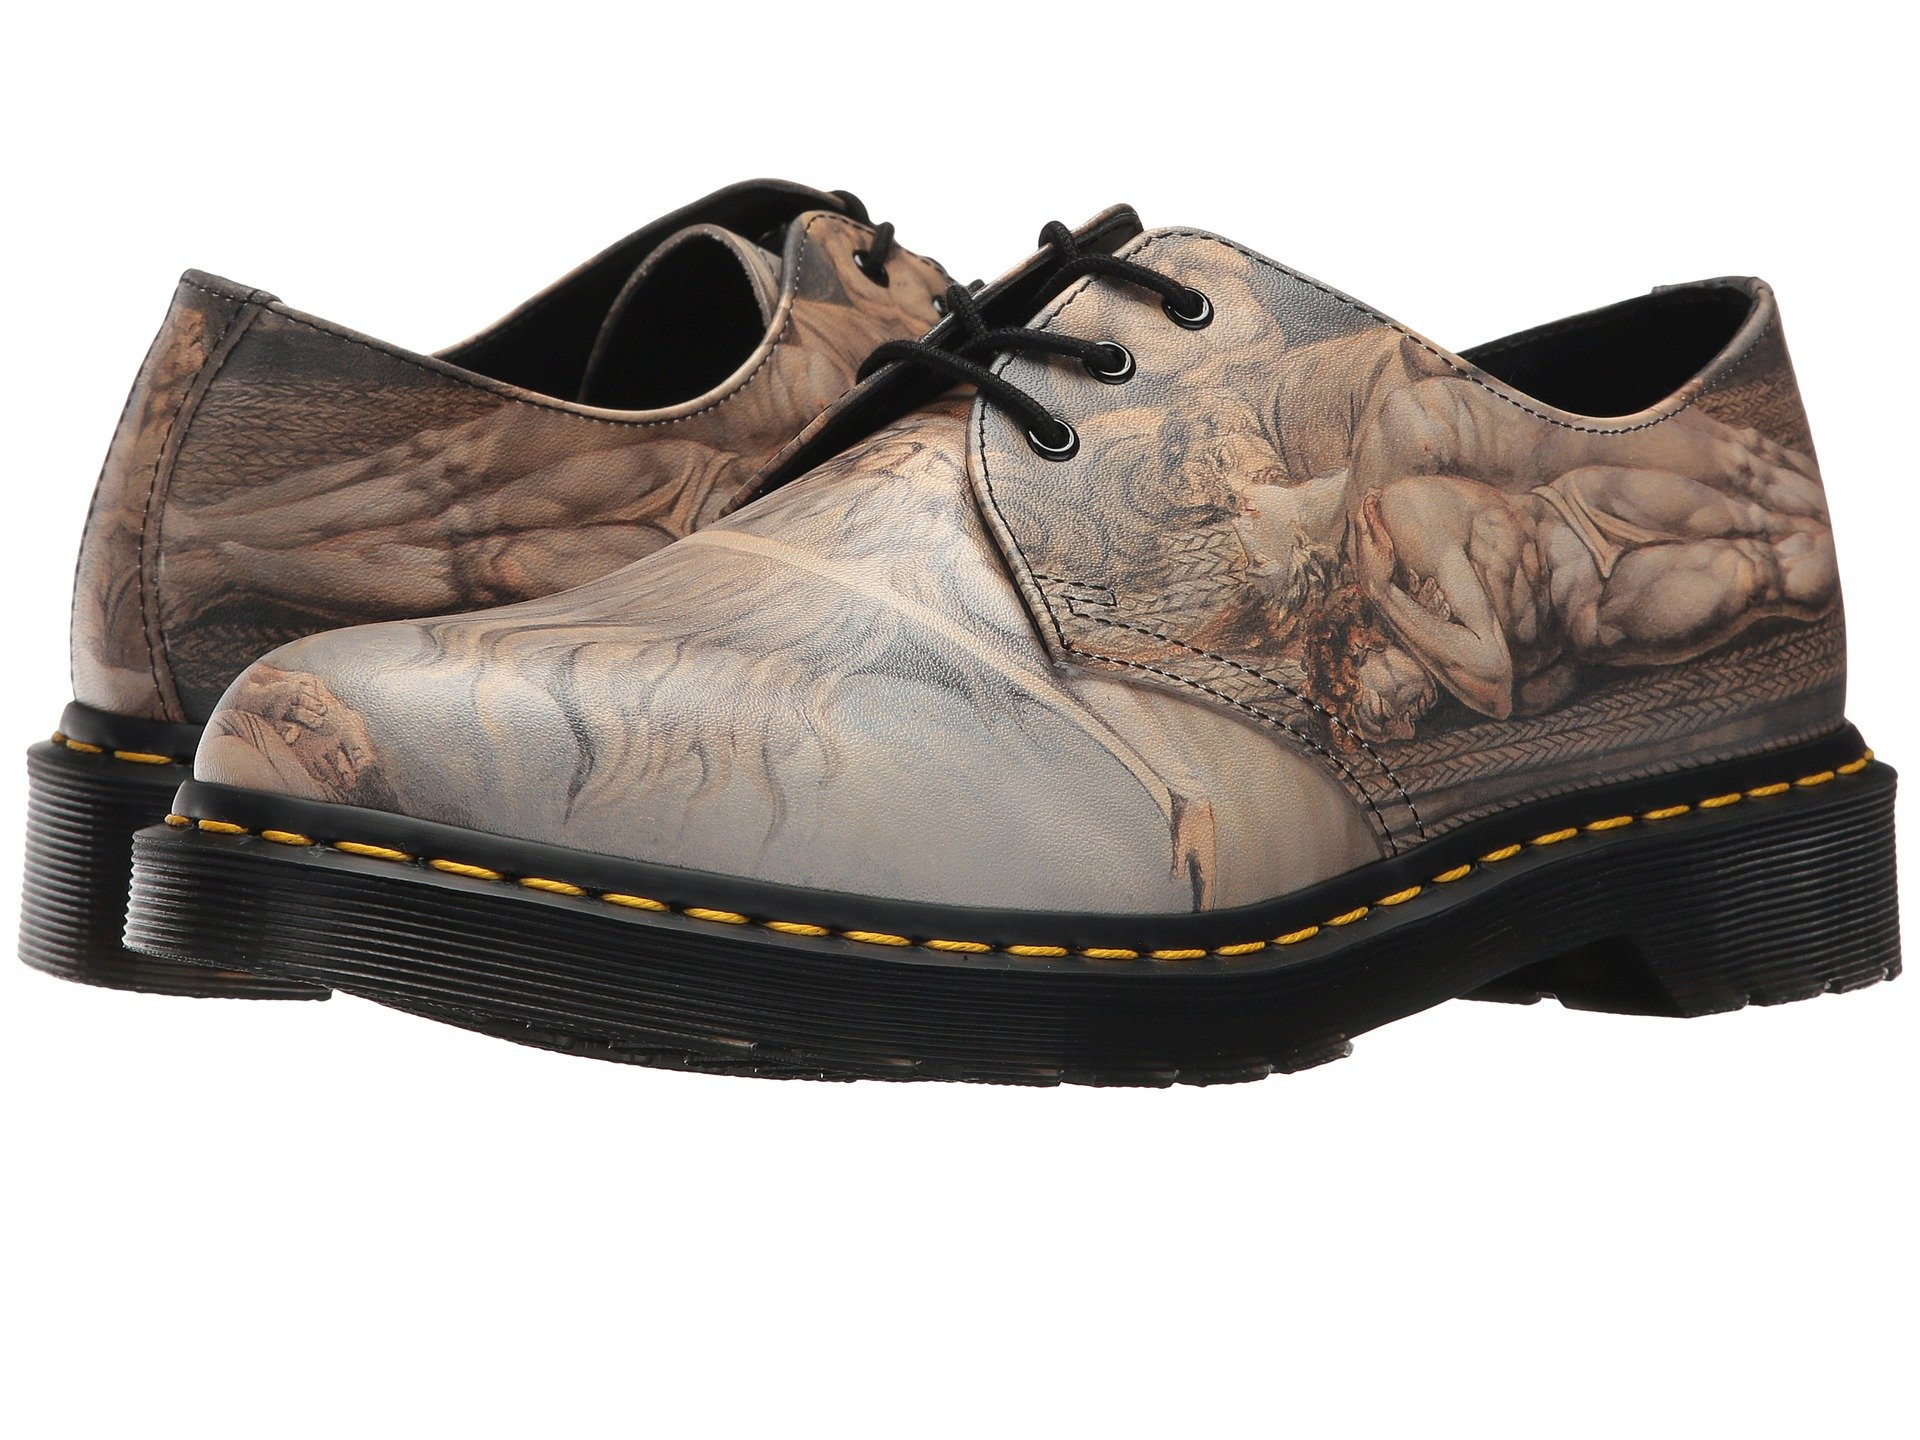 Dr. Martens William Blake 1461 3-Eye Shoe q0wtu